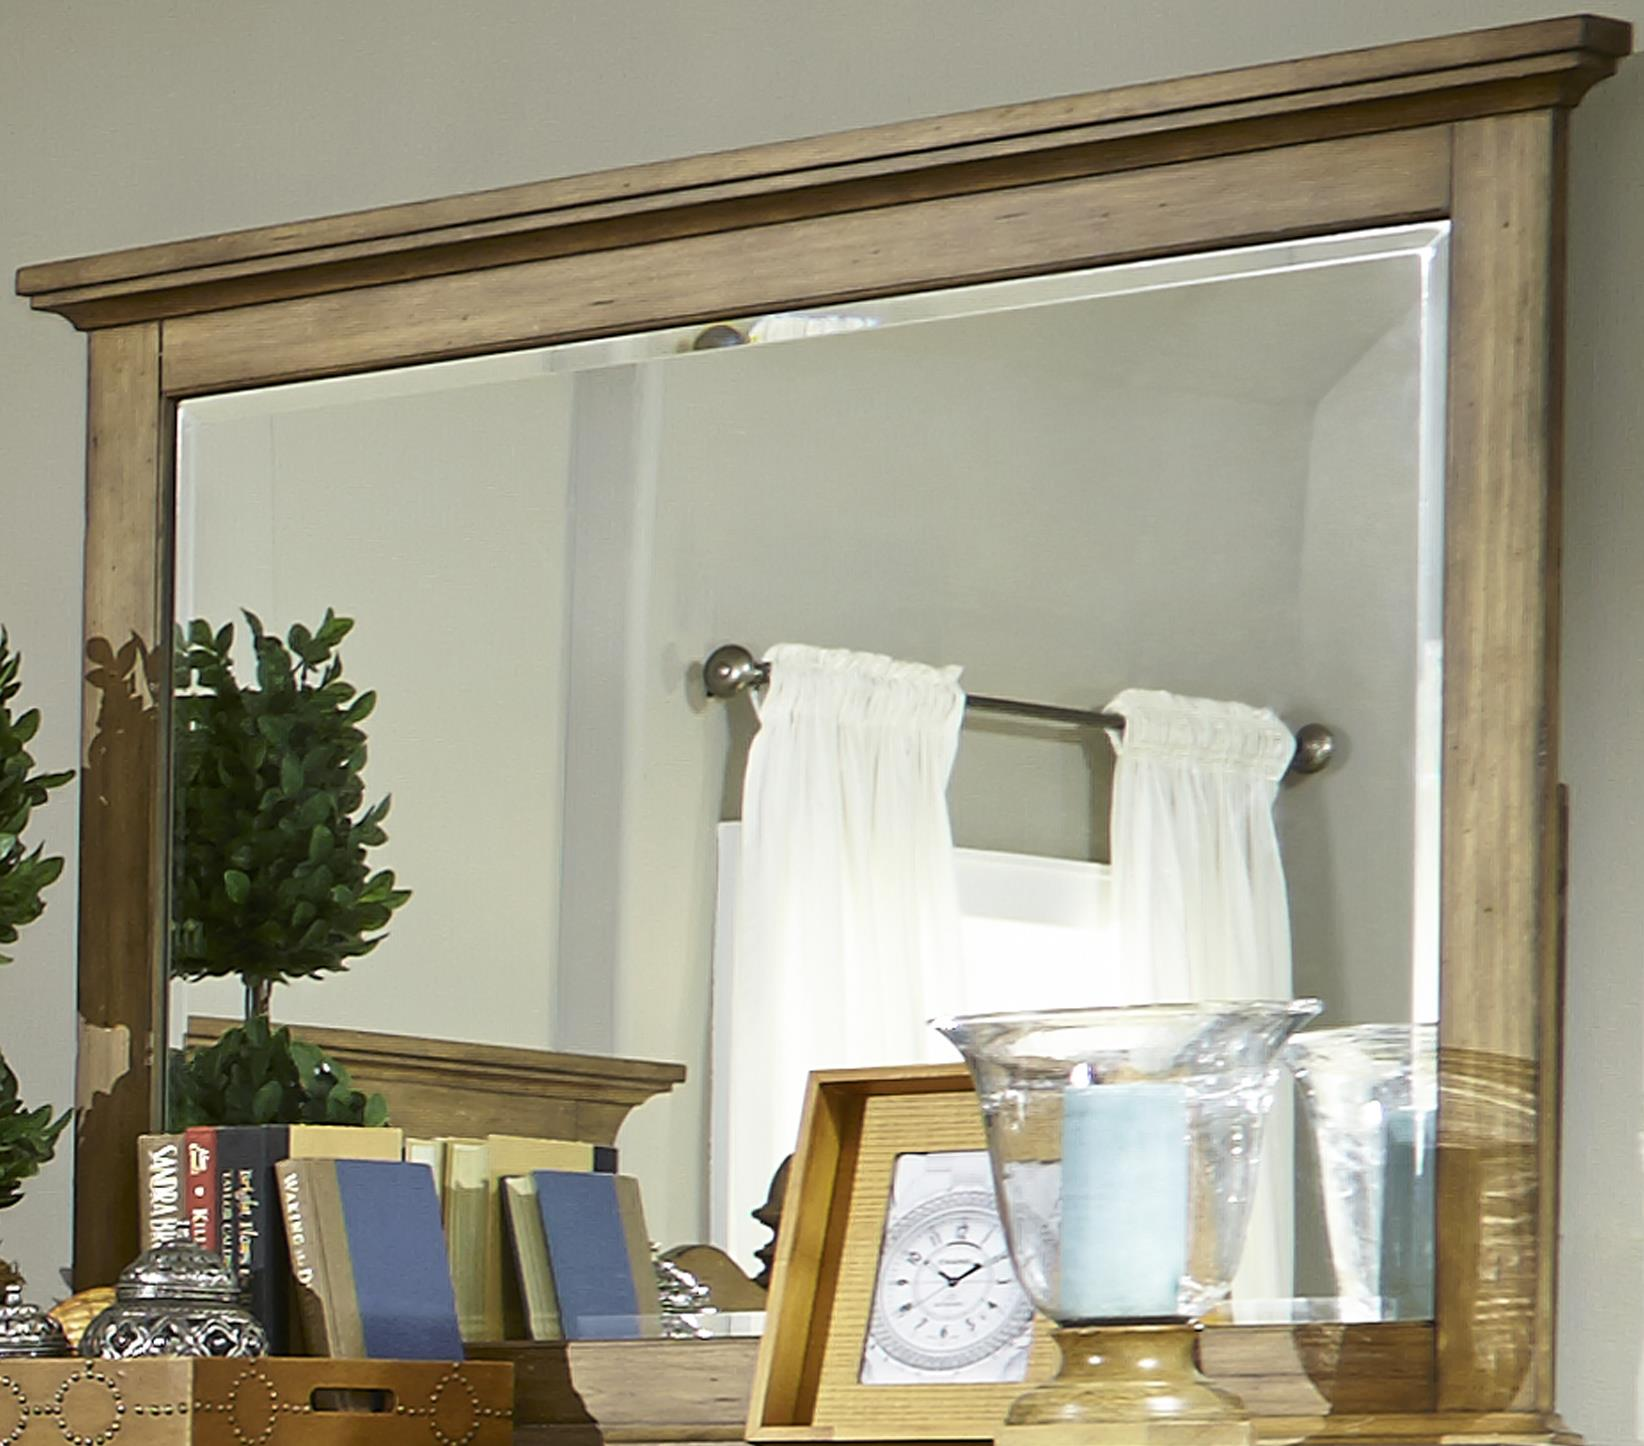 Liberty Furniture High Country Landscape Mirror - Item Number: 797-BR51